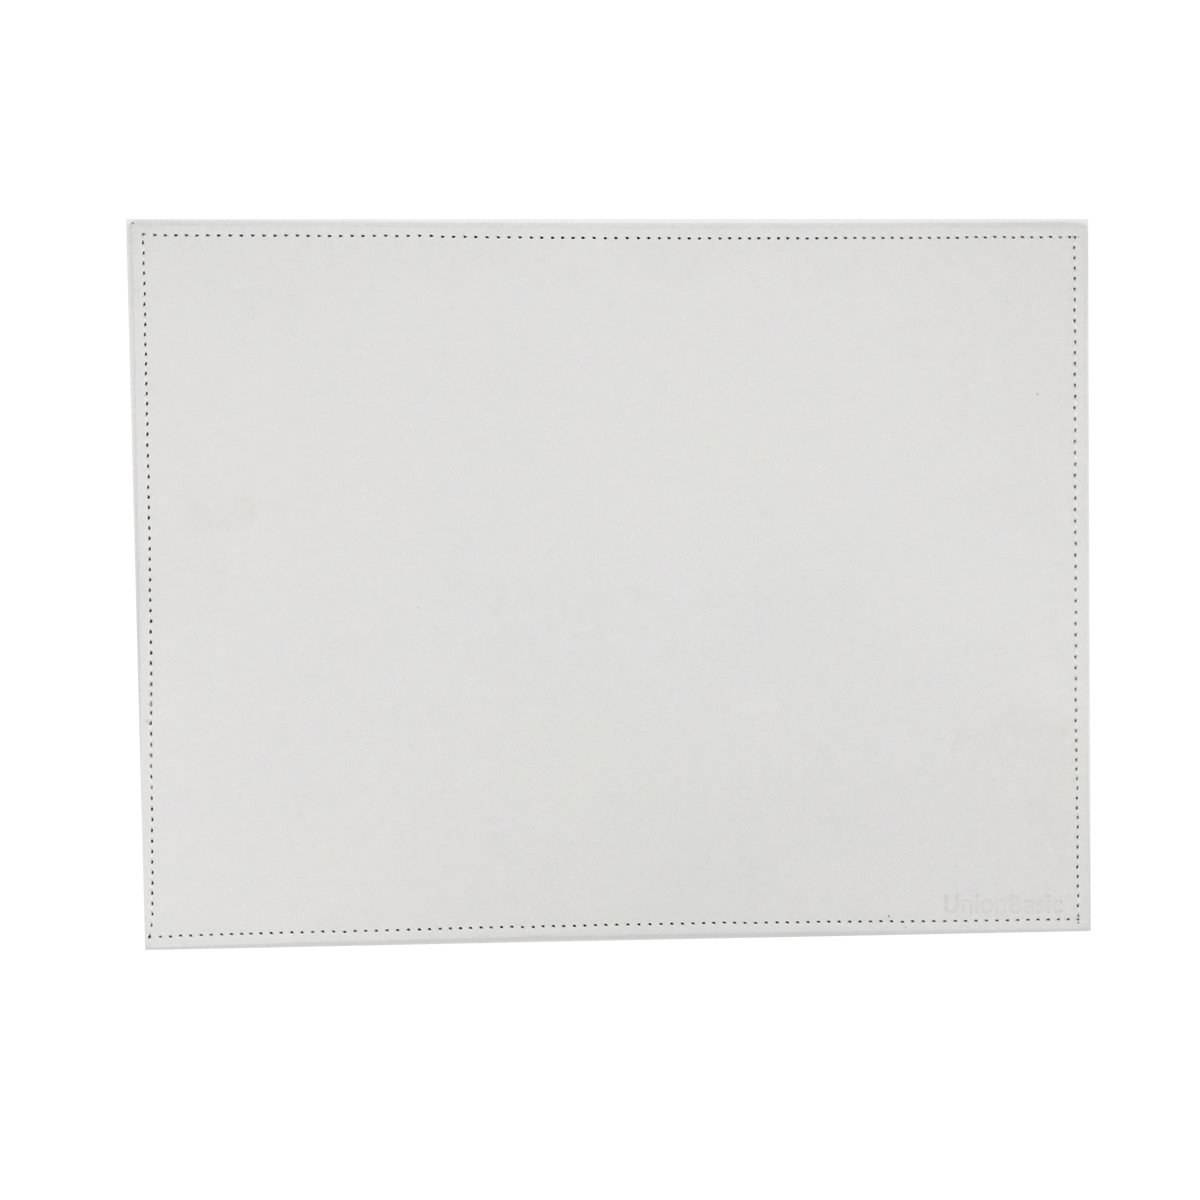 UnionBasic PU Leather Desk Mat - Protective Mat & Protector Mouse Pad for Desktops and Laptops, 24'' x 16'' (White, Size M)